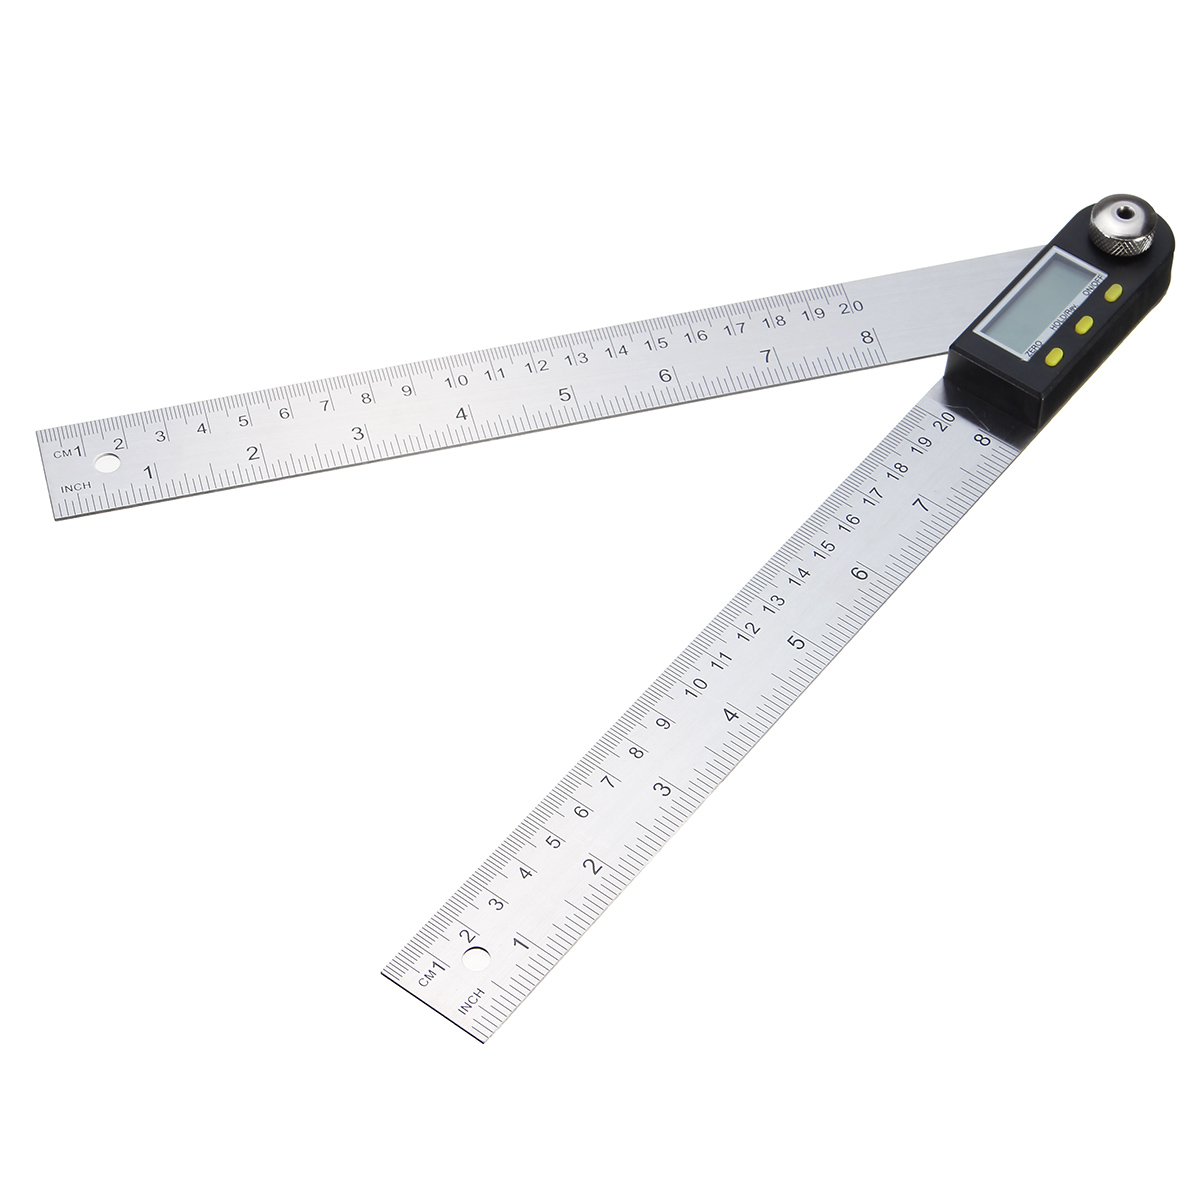 2-in-1 200mm Stainless Steel Digital Protractor Inclinometer